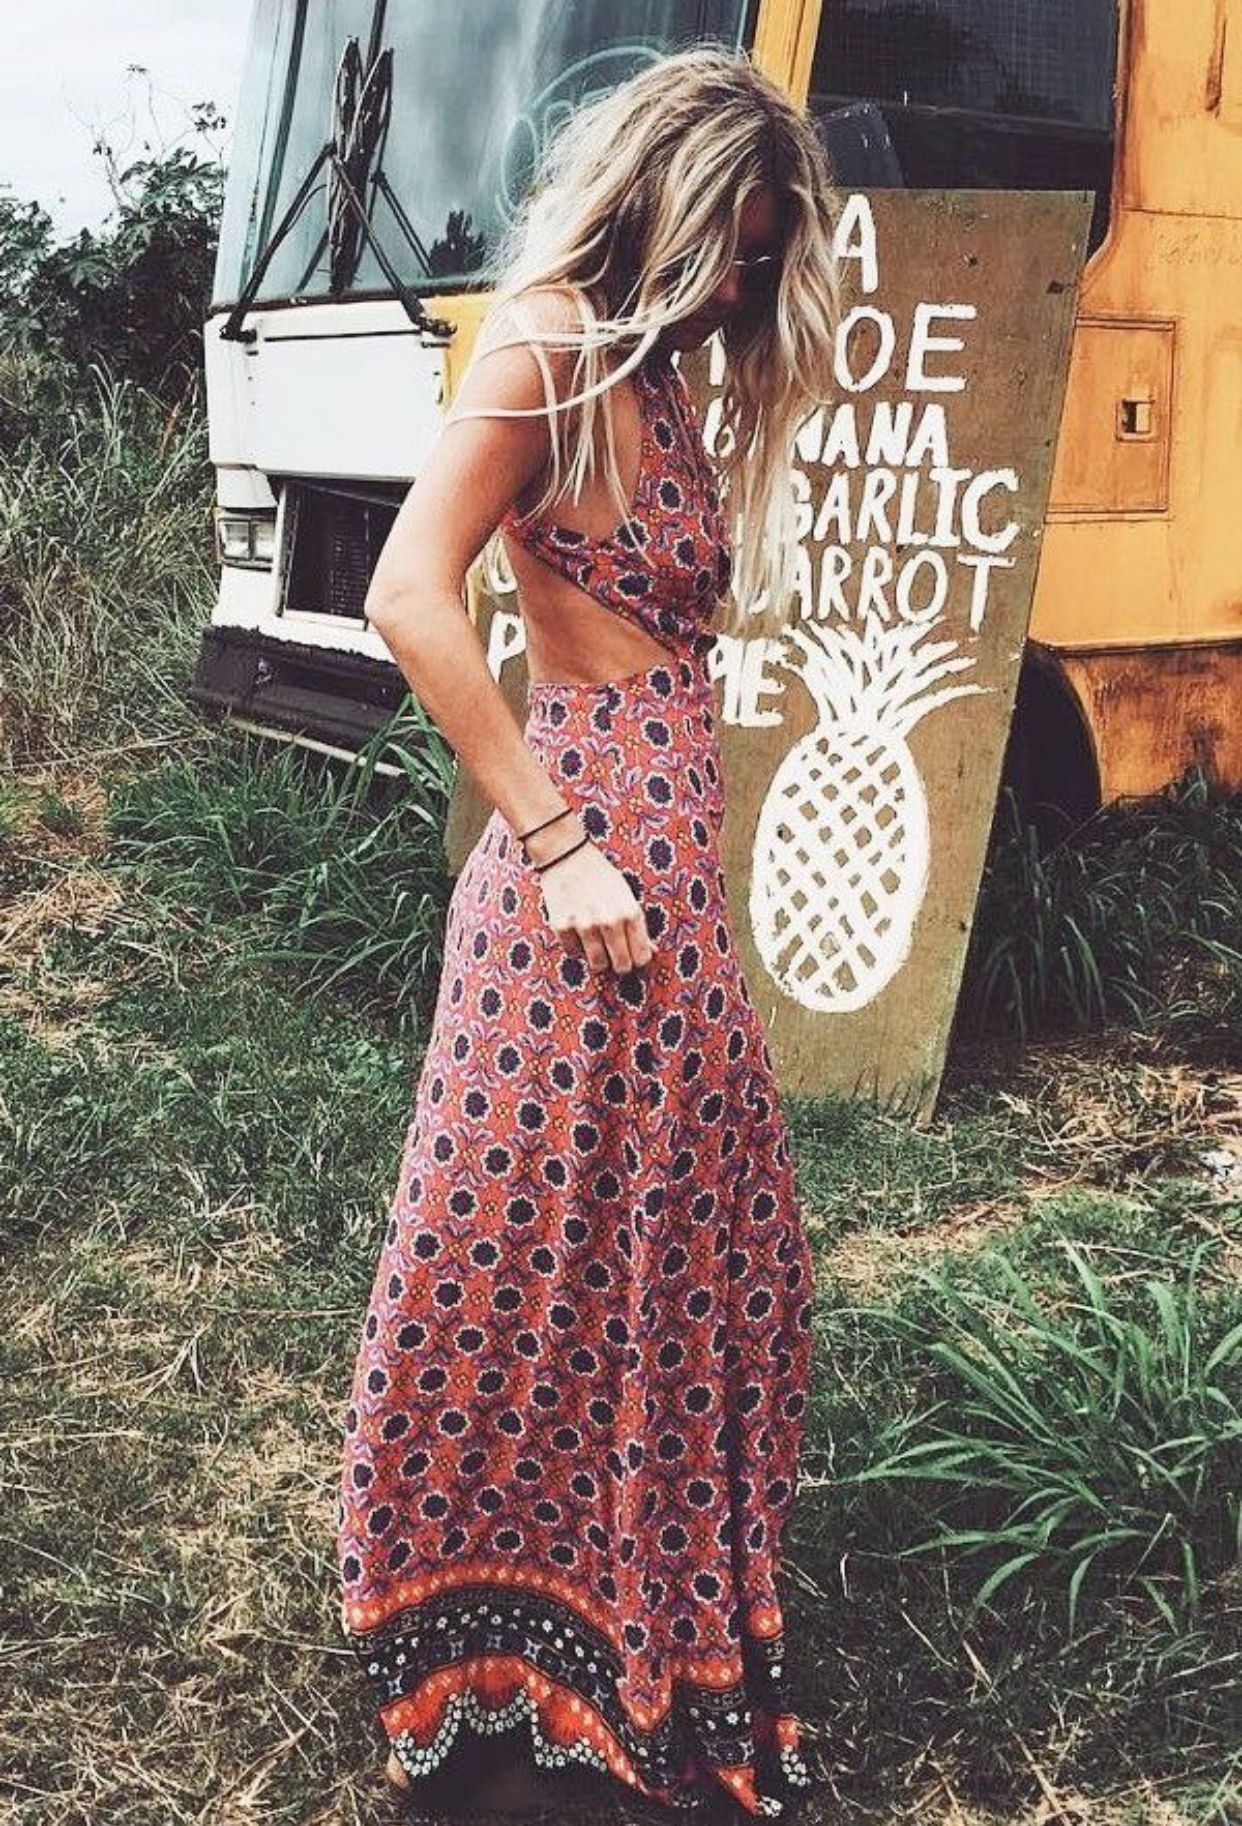 42b7bbbad8c2 pinterest : @darlinglainy Cold Festival Outfit, Summer Festival Outfits,  Boho Chic Outfits Summer